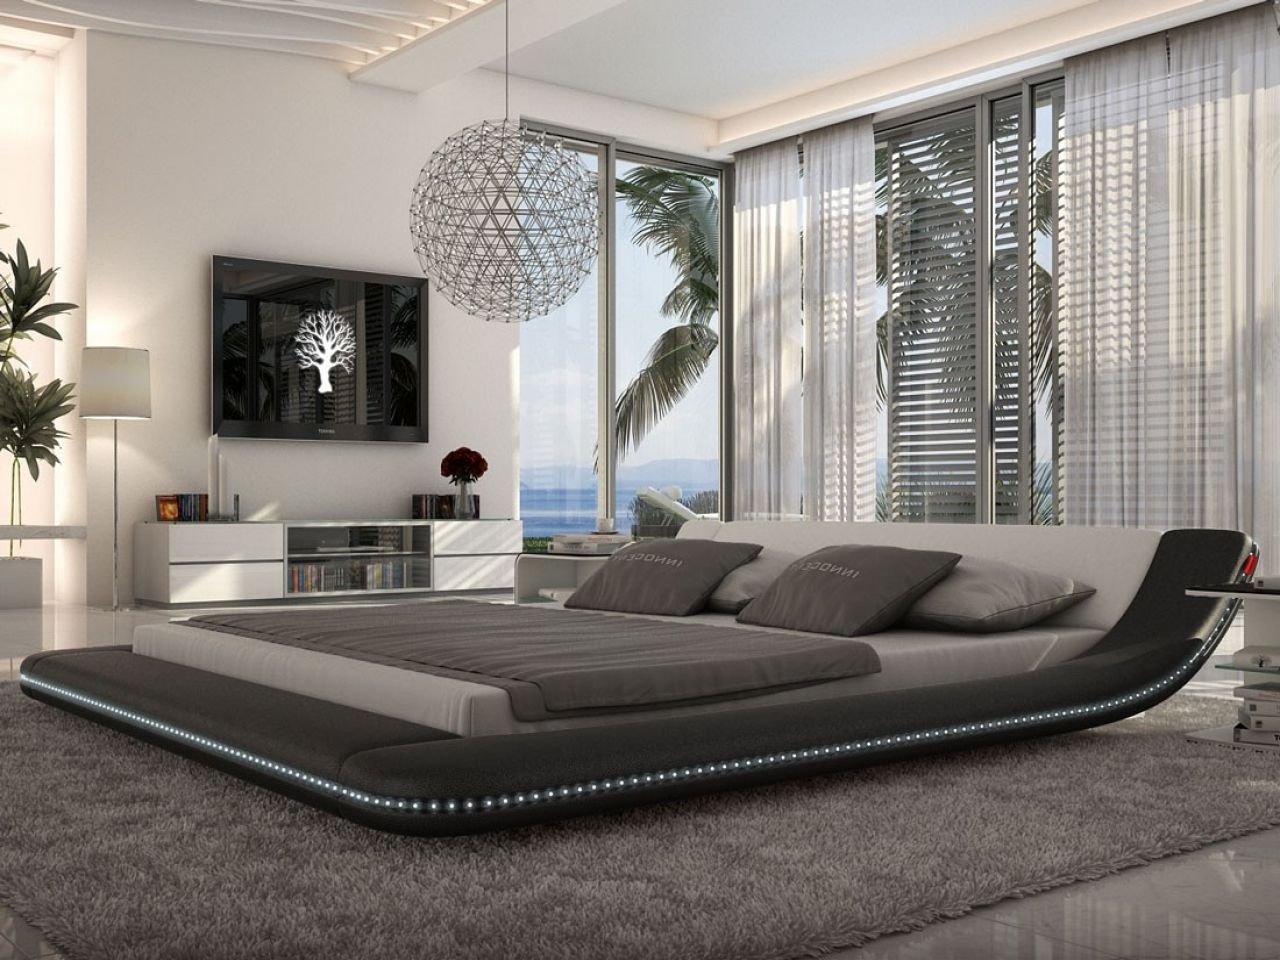 Master bedroom modern  CONTEMPORARY BEDROOM DECOR WITH HUGE MASTER BED  A modern bedroom